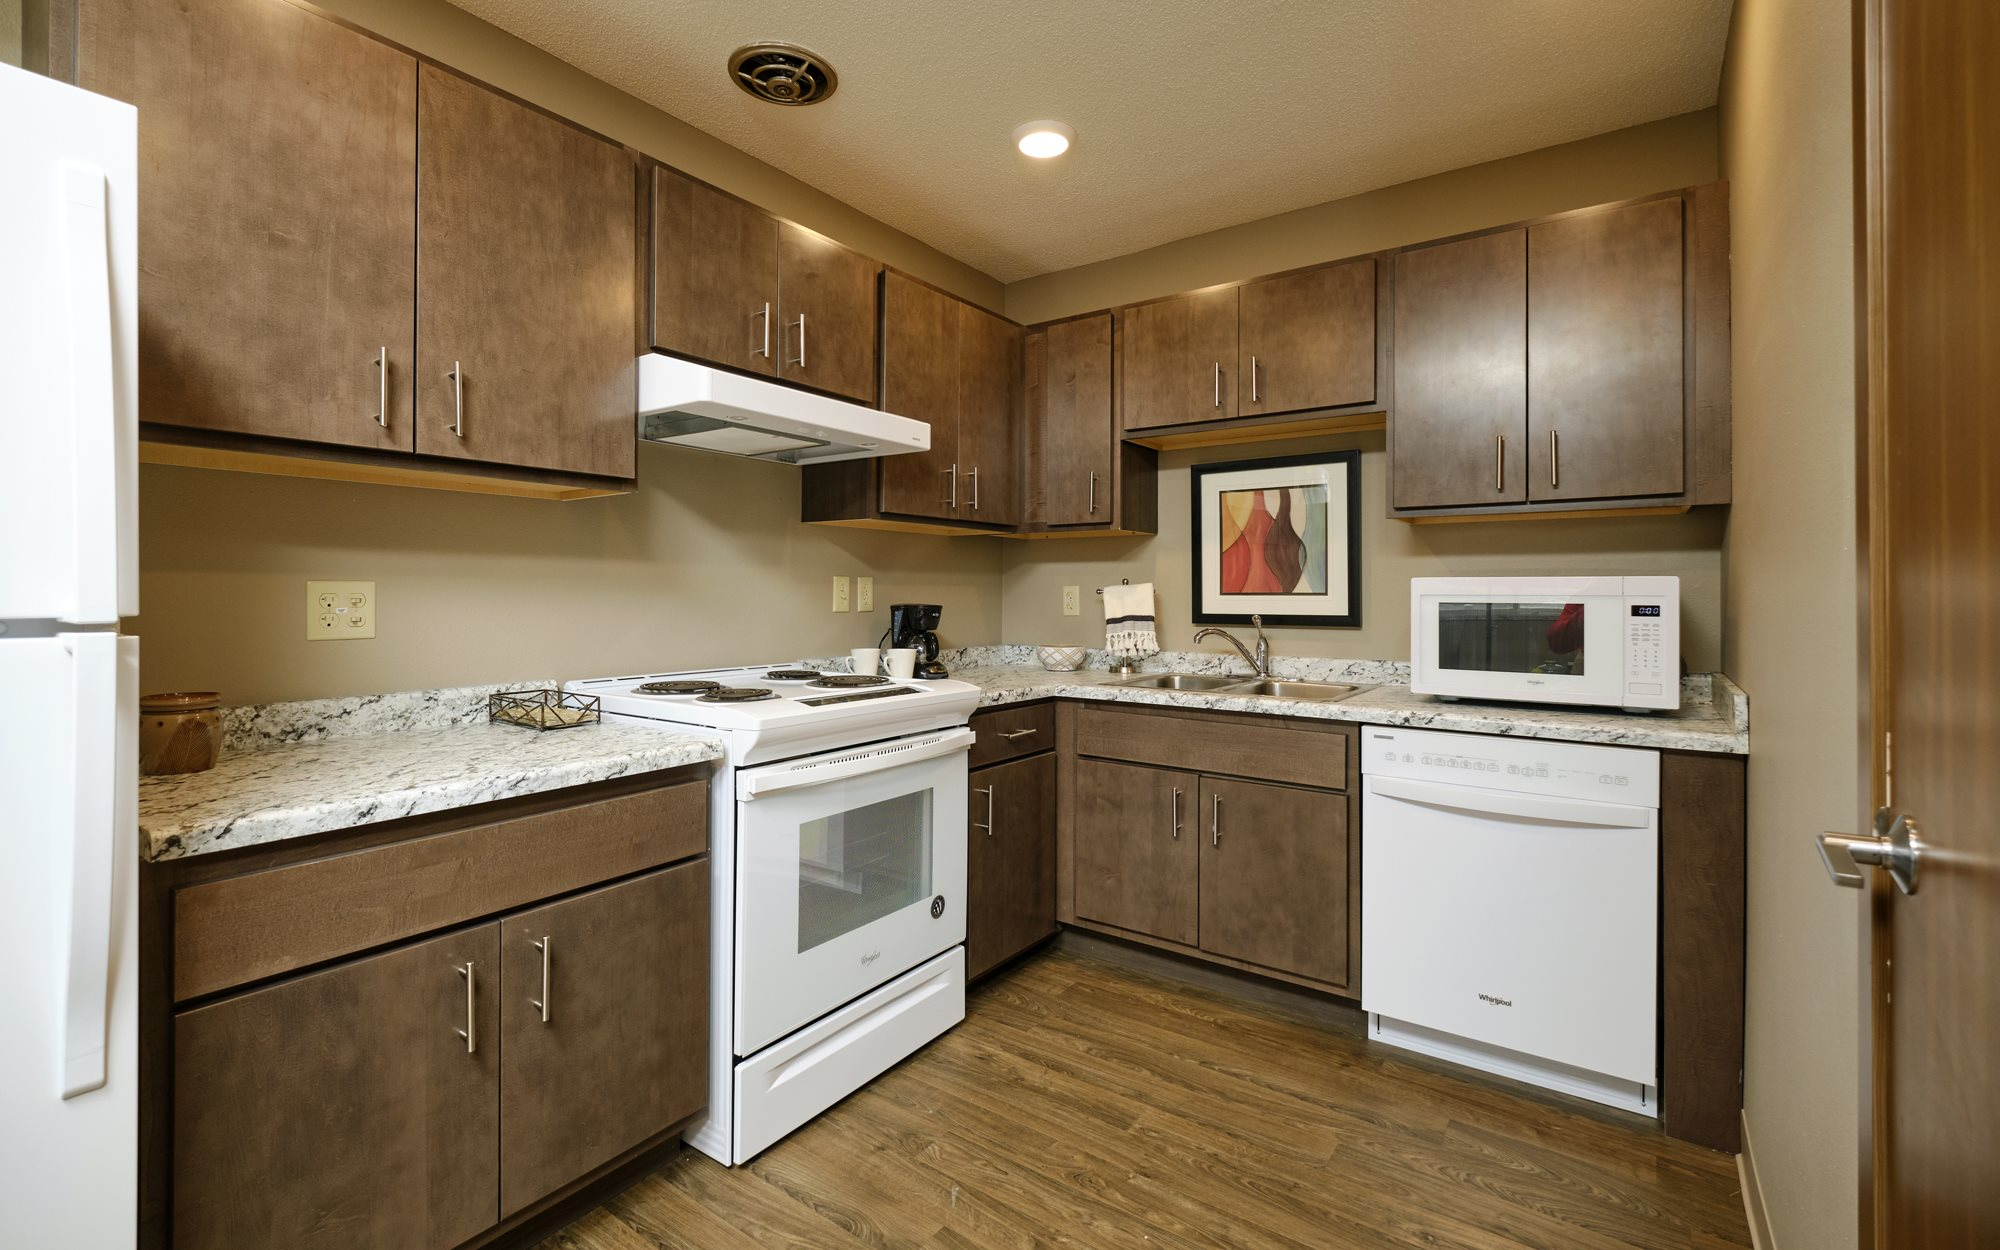 A kitchen in Sunset Apartments shows all appliances including microwave and dishwasher are included.